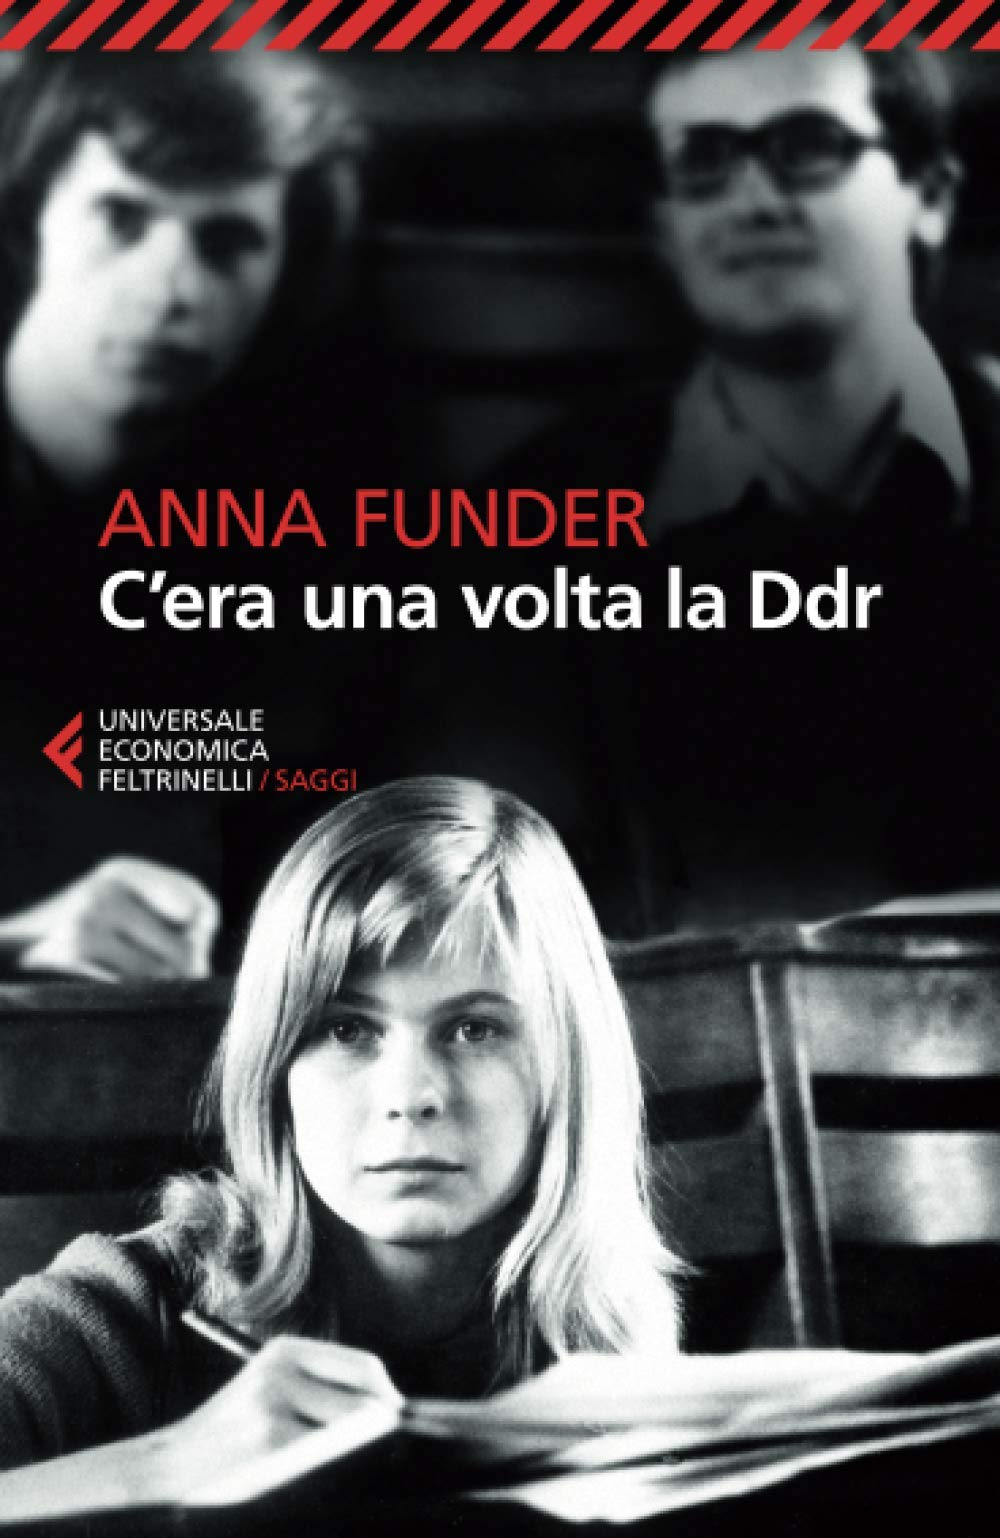 Amazon.it: C'era una volta la Ddr - Funder, Anna - Libri